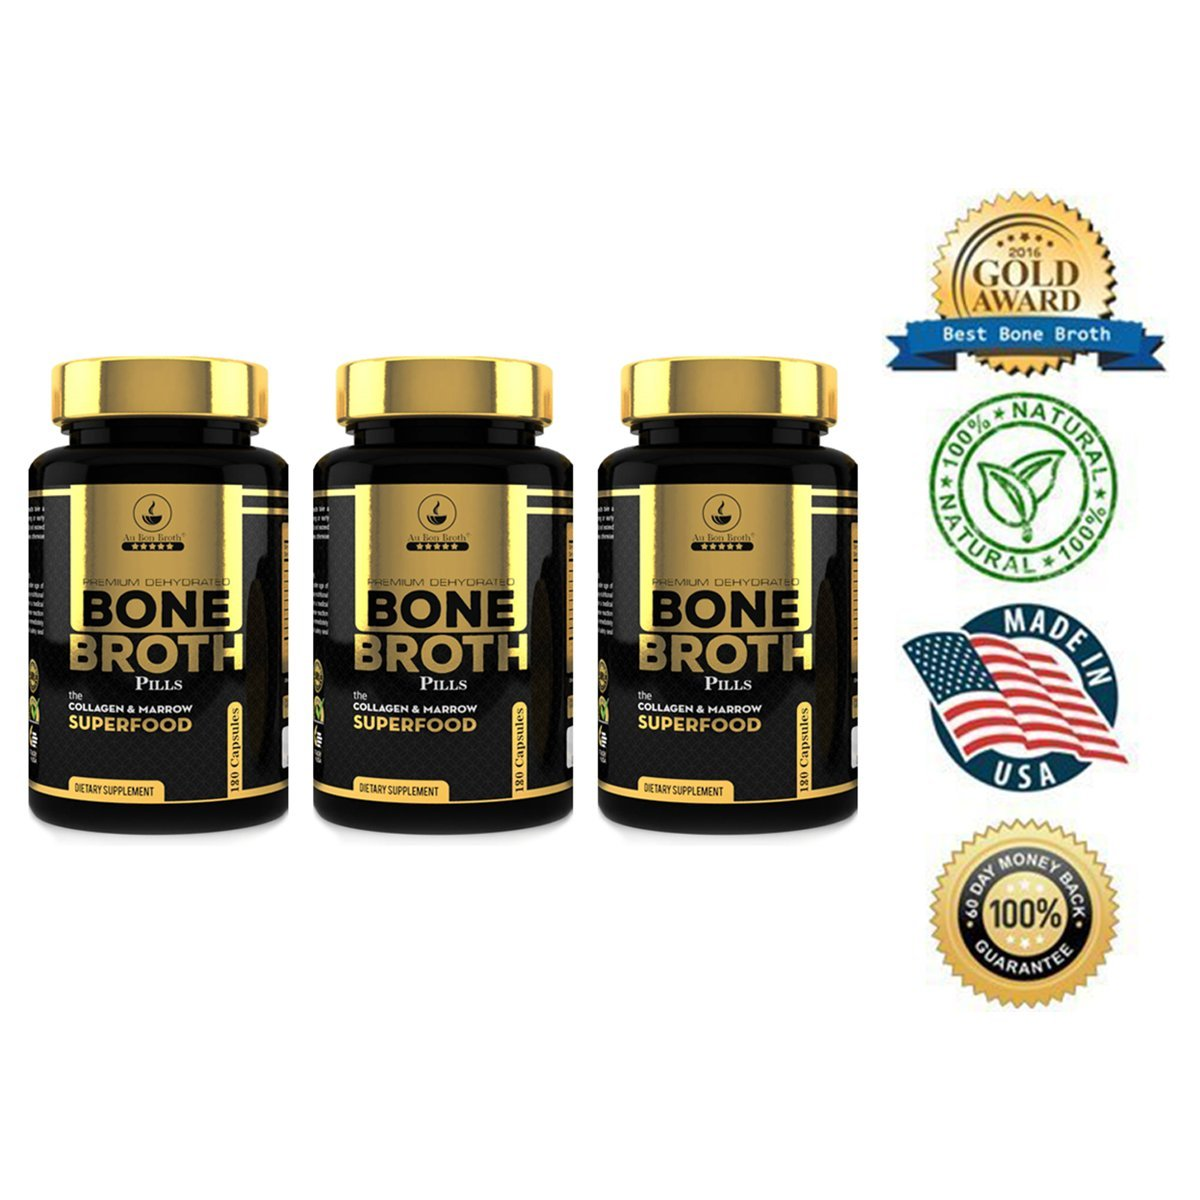 Bone Broth Protein Powder Superfood Capsules – Organic Dehydrated Grassfed Beef Chicken Powder Blend Pills – Non-GMO – Great Source of Collagen Bone Broth Protein 540 Capsules Total